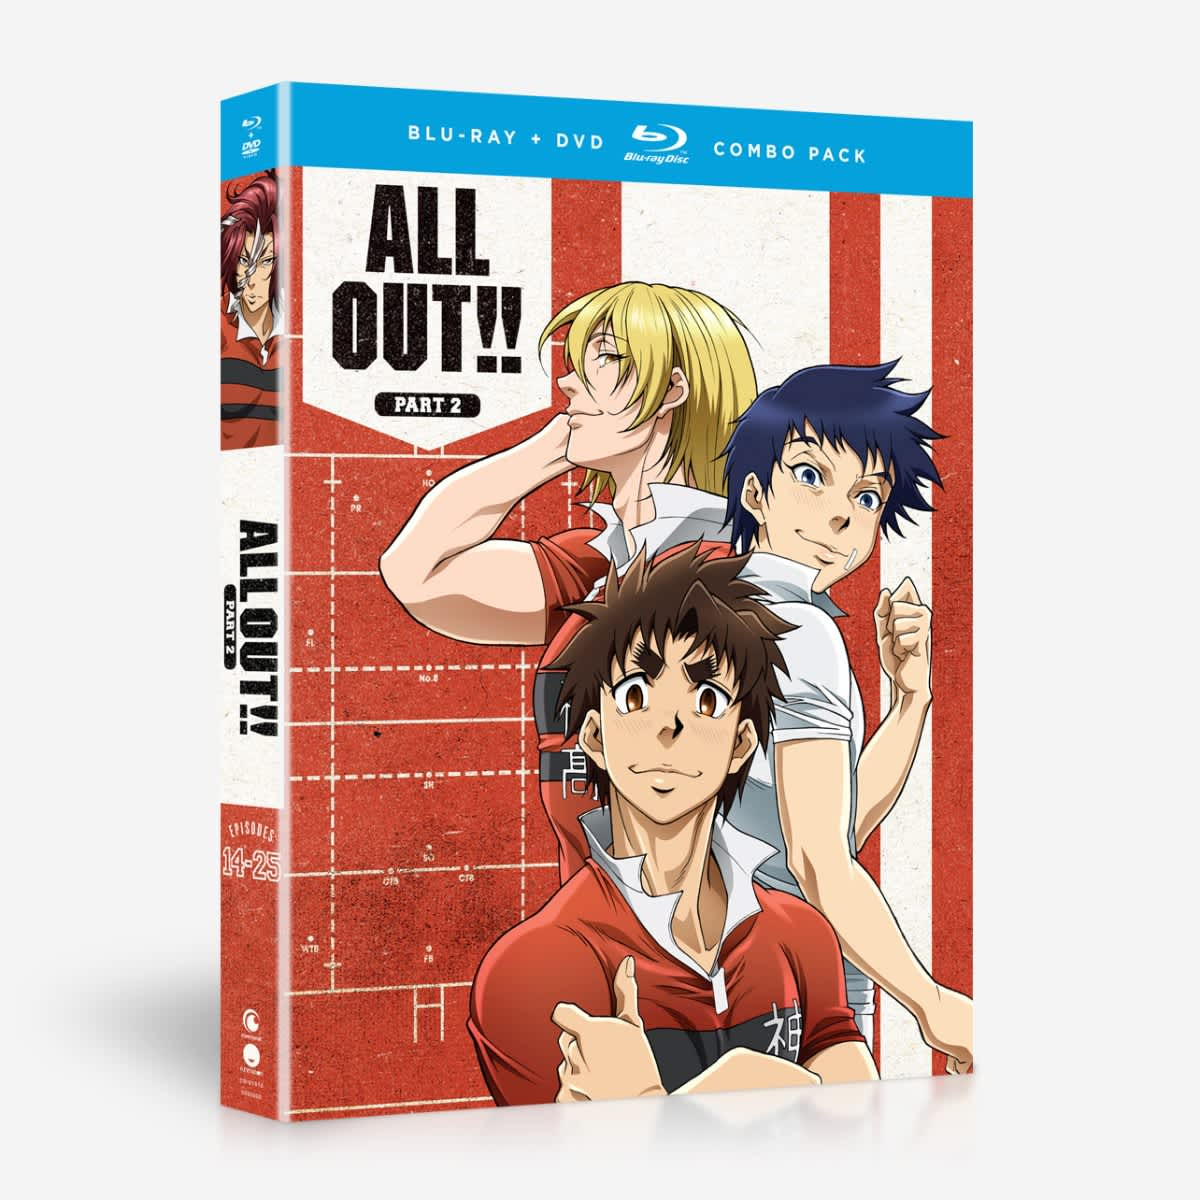 ALL OUT!! Part 2 Blu-ray/DVD 704400019104